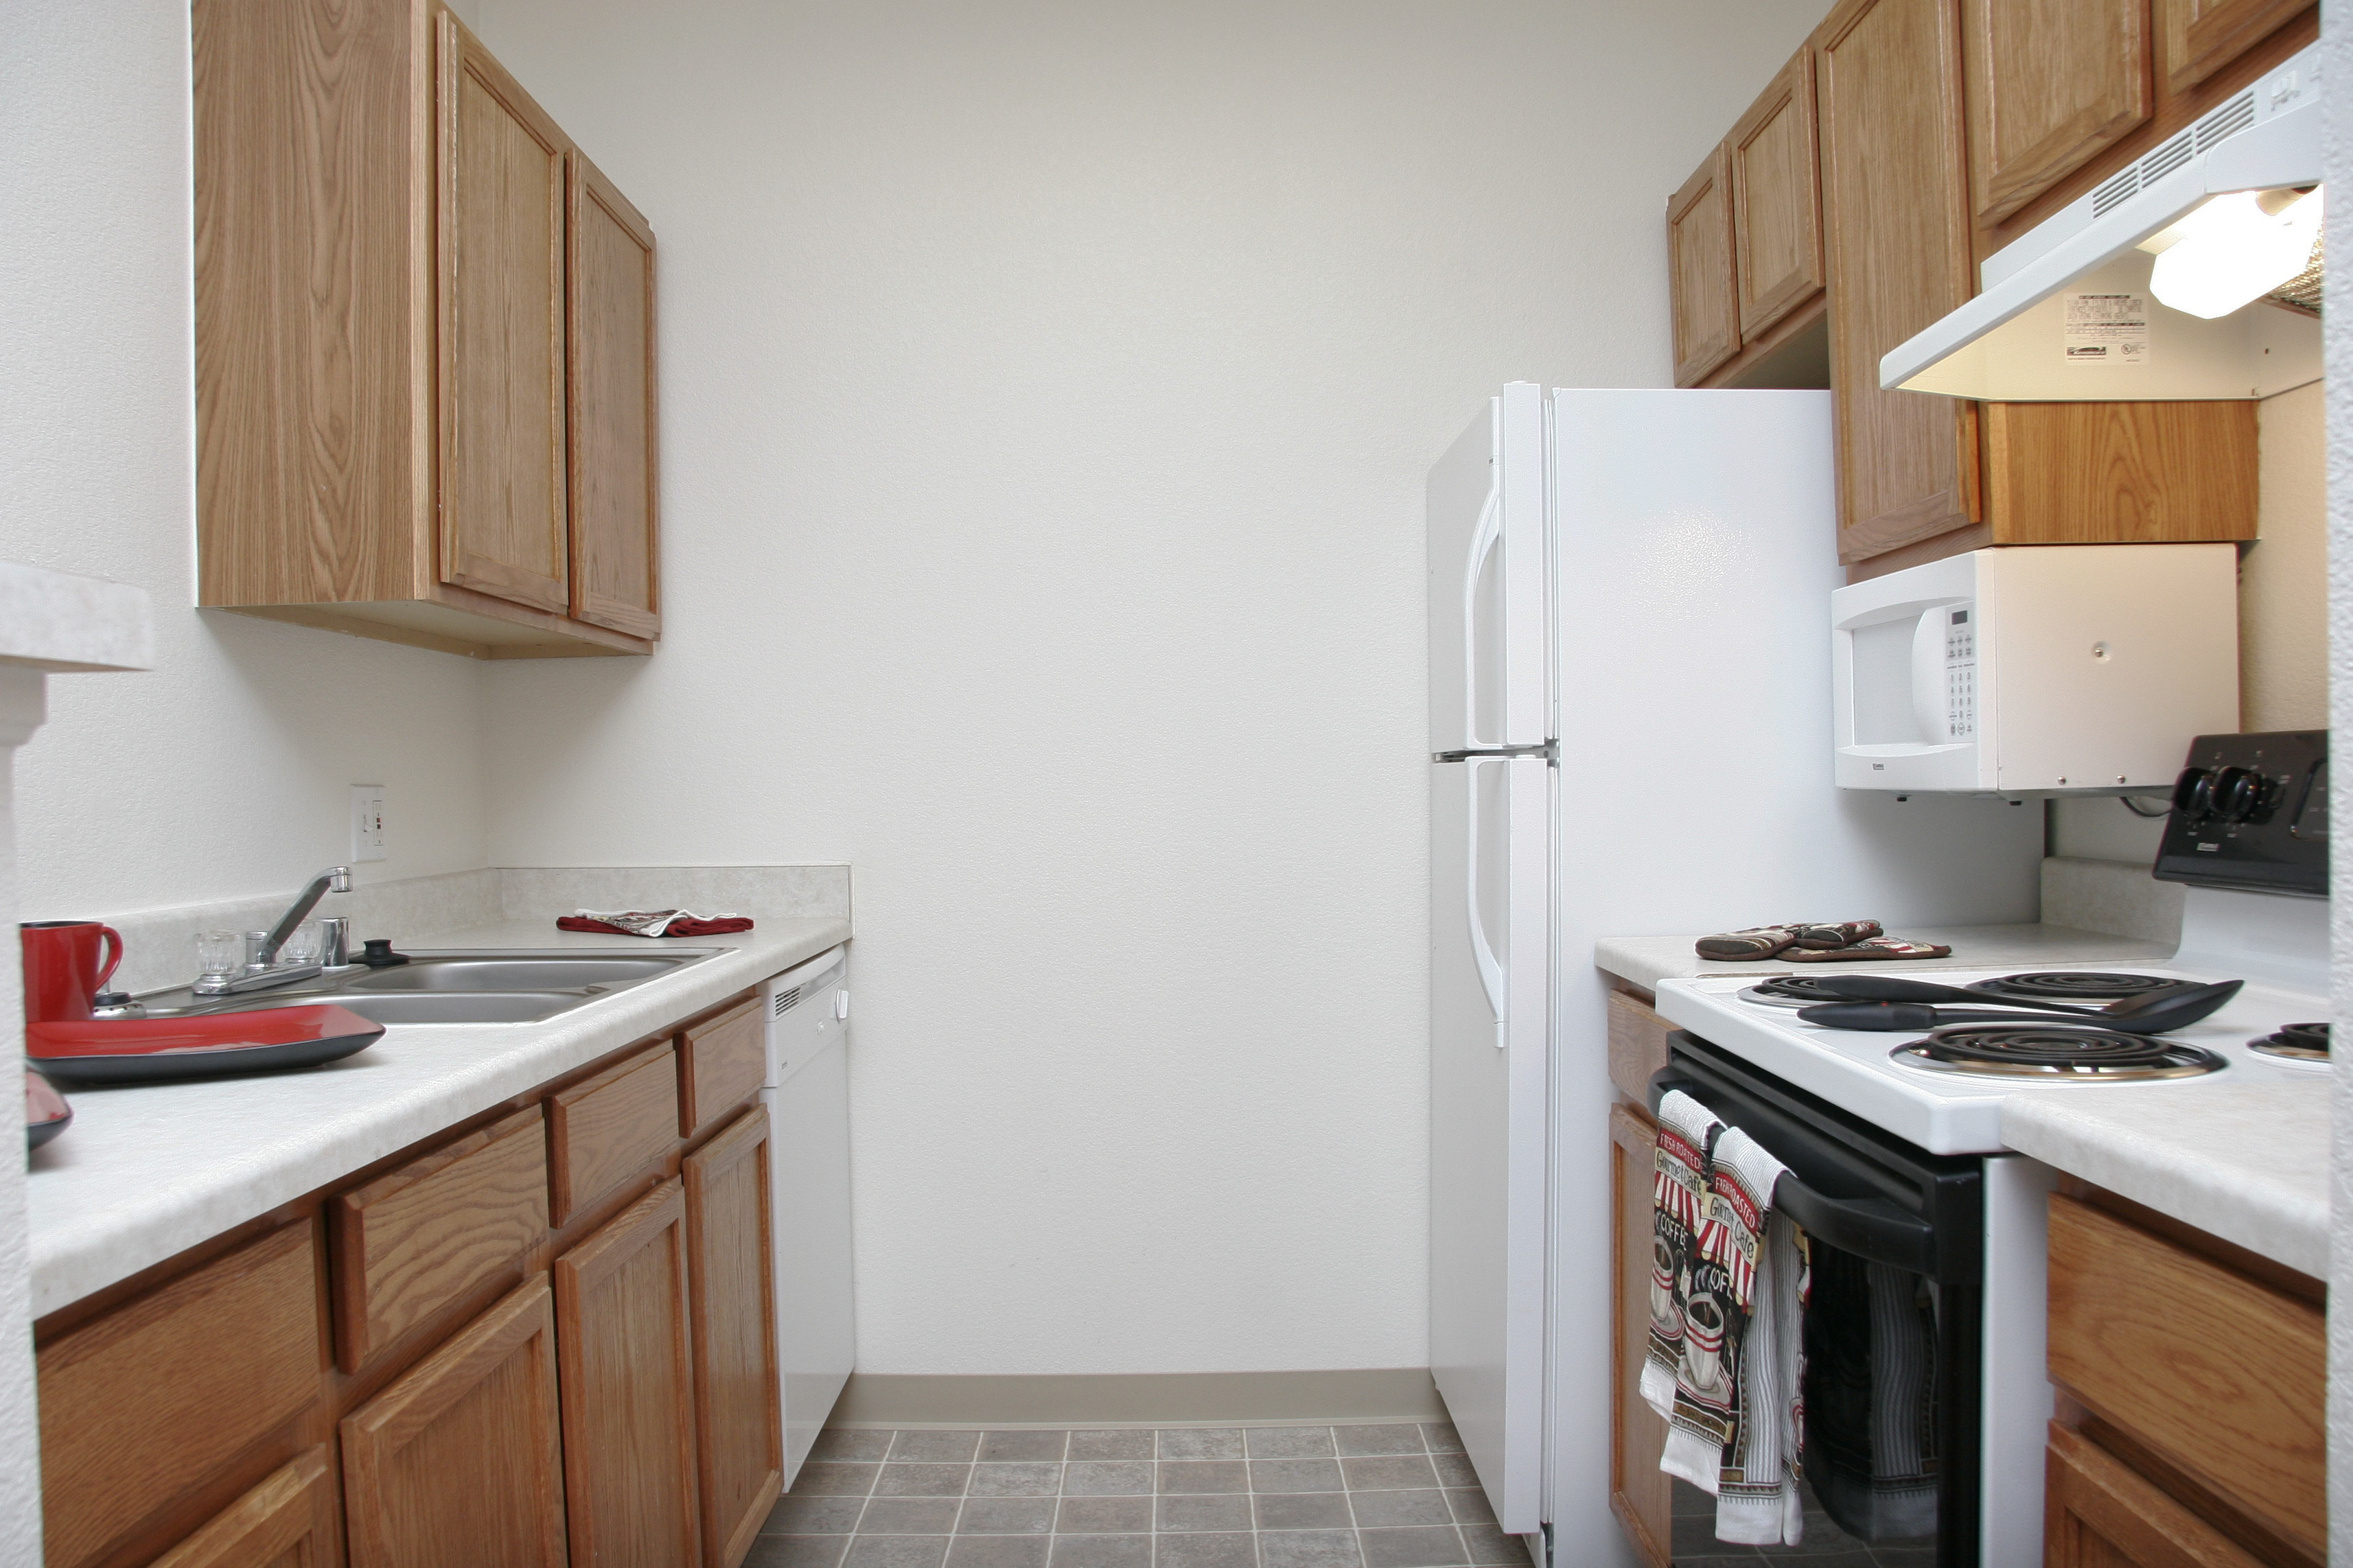 20 Best Apartments For Rent In Berkley, CO (with pictures)!